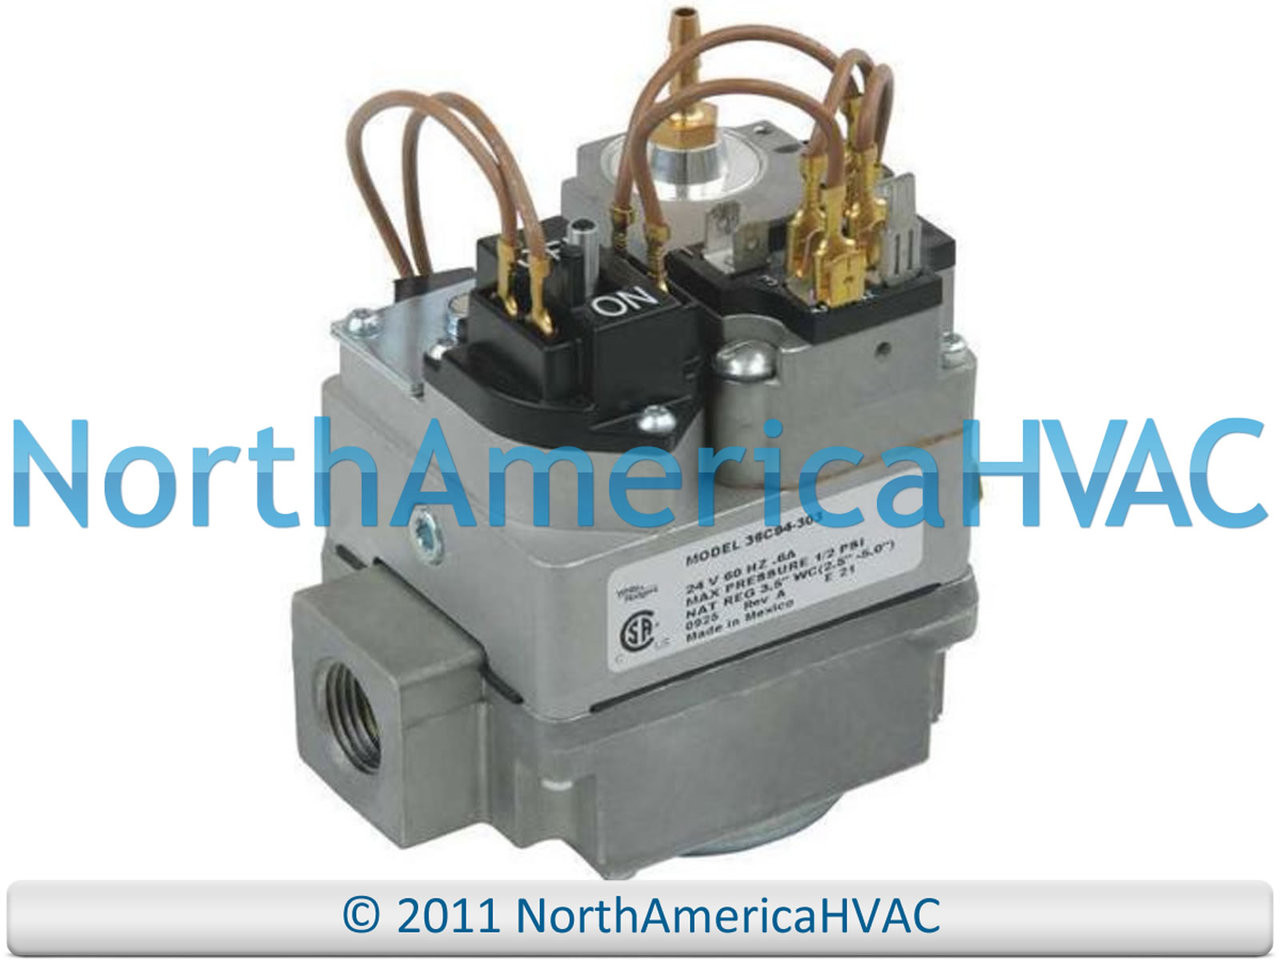 White Rodgers 36e Gas Valve Manual 36e54 214 Wiring Diagram Furnace Pilot 36c94 302 303 36e93 301 Nat